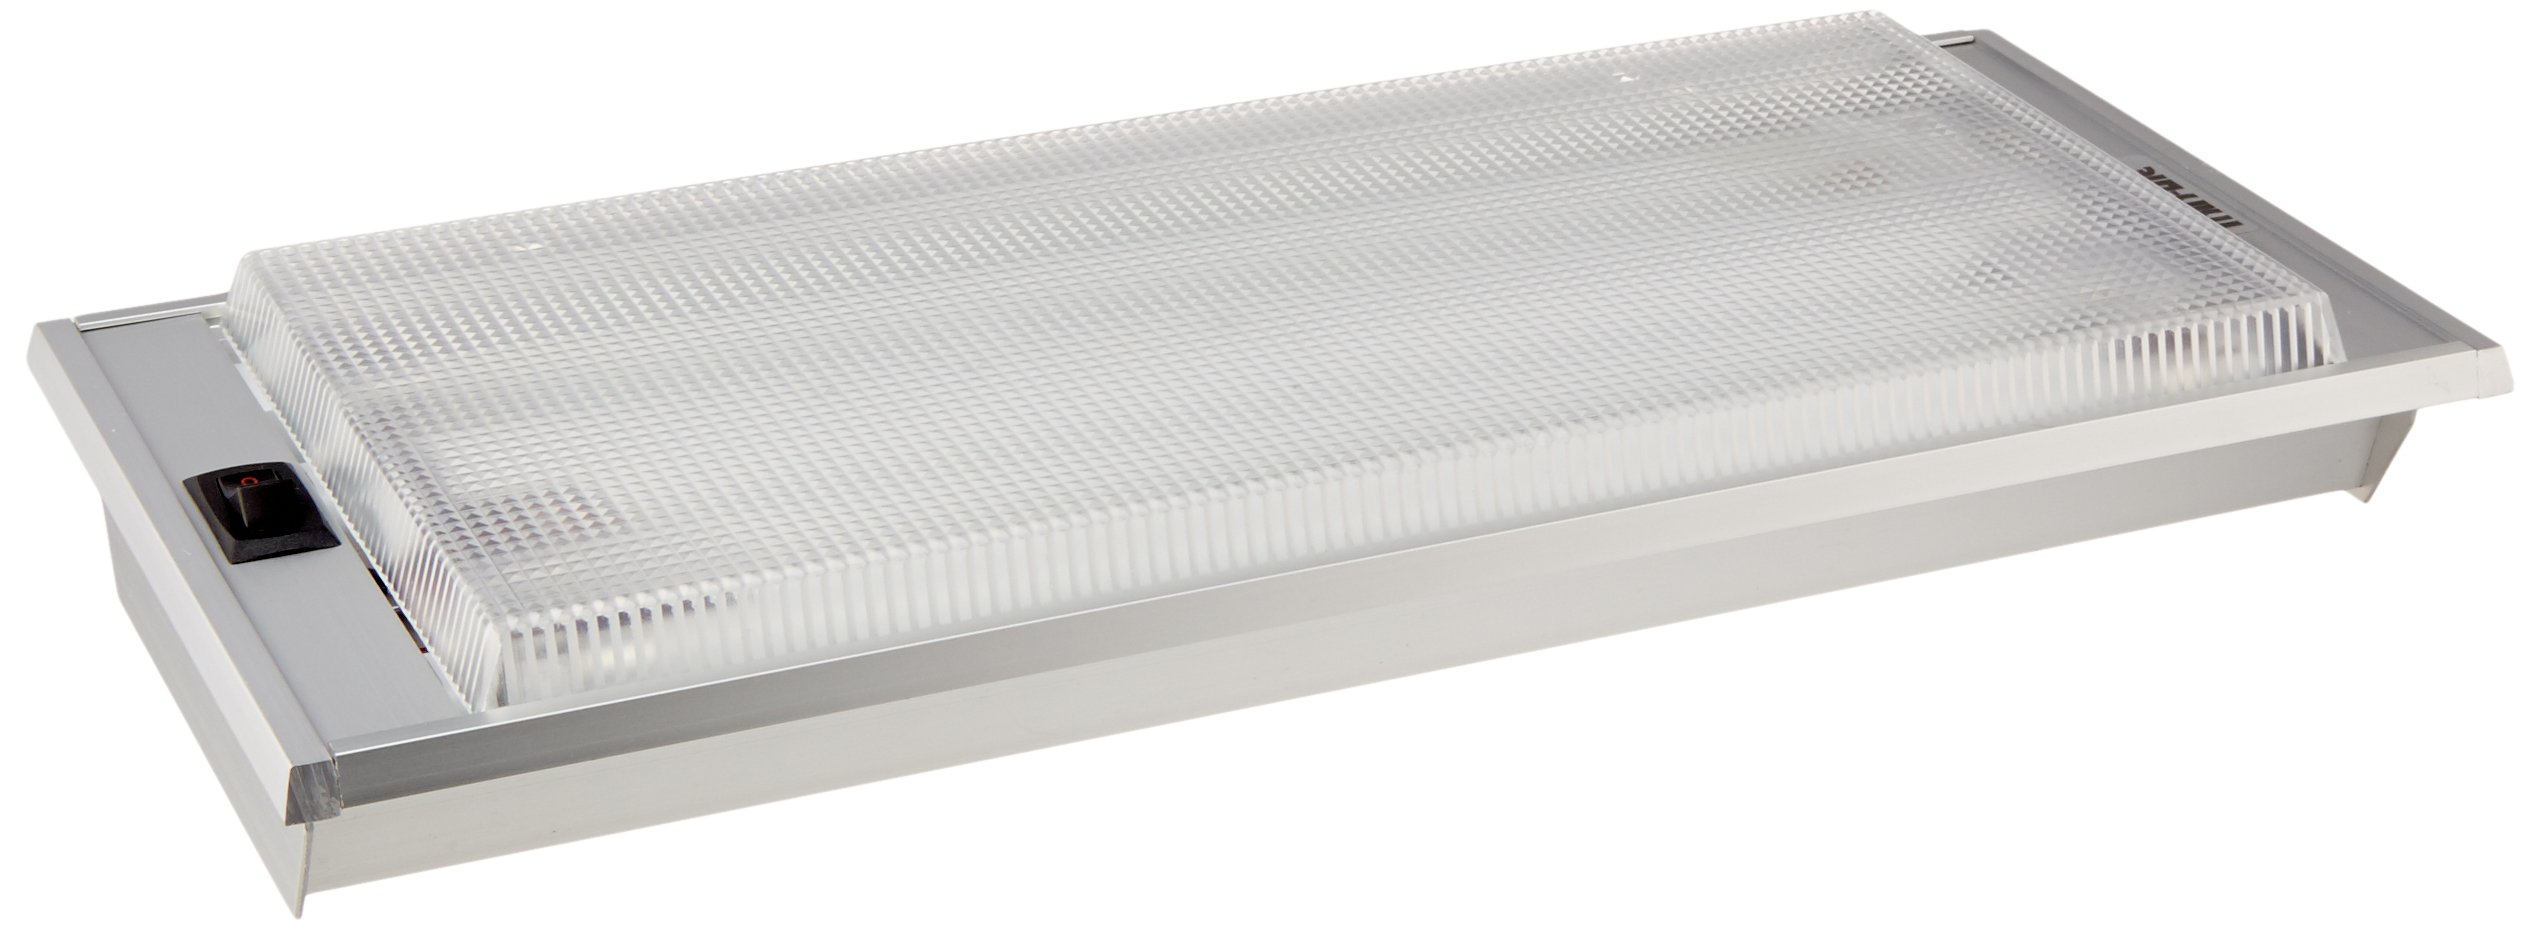 Thin-Lite (712XL DIST 16 Watt Recessed Fluorescent Light